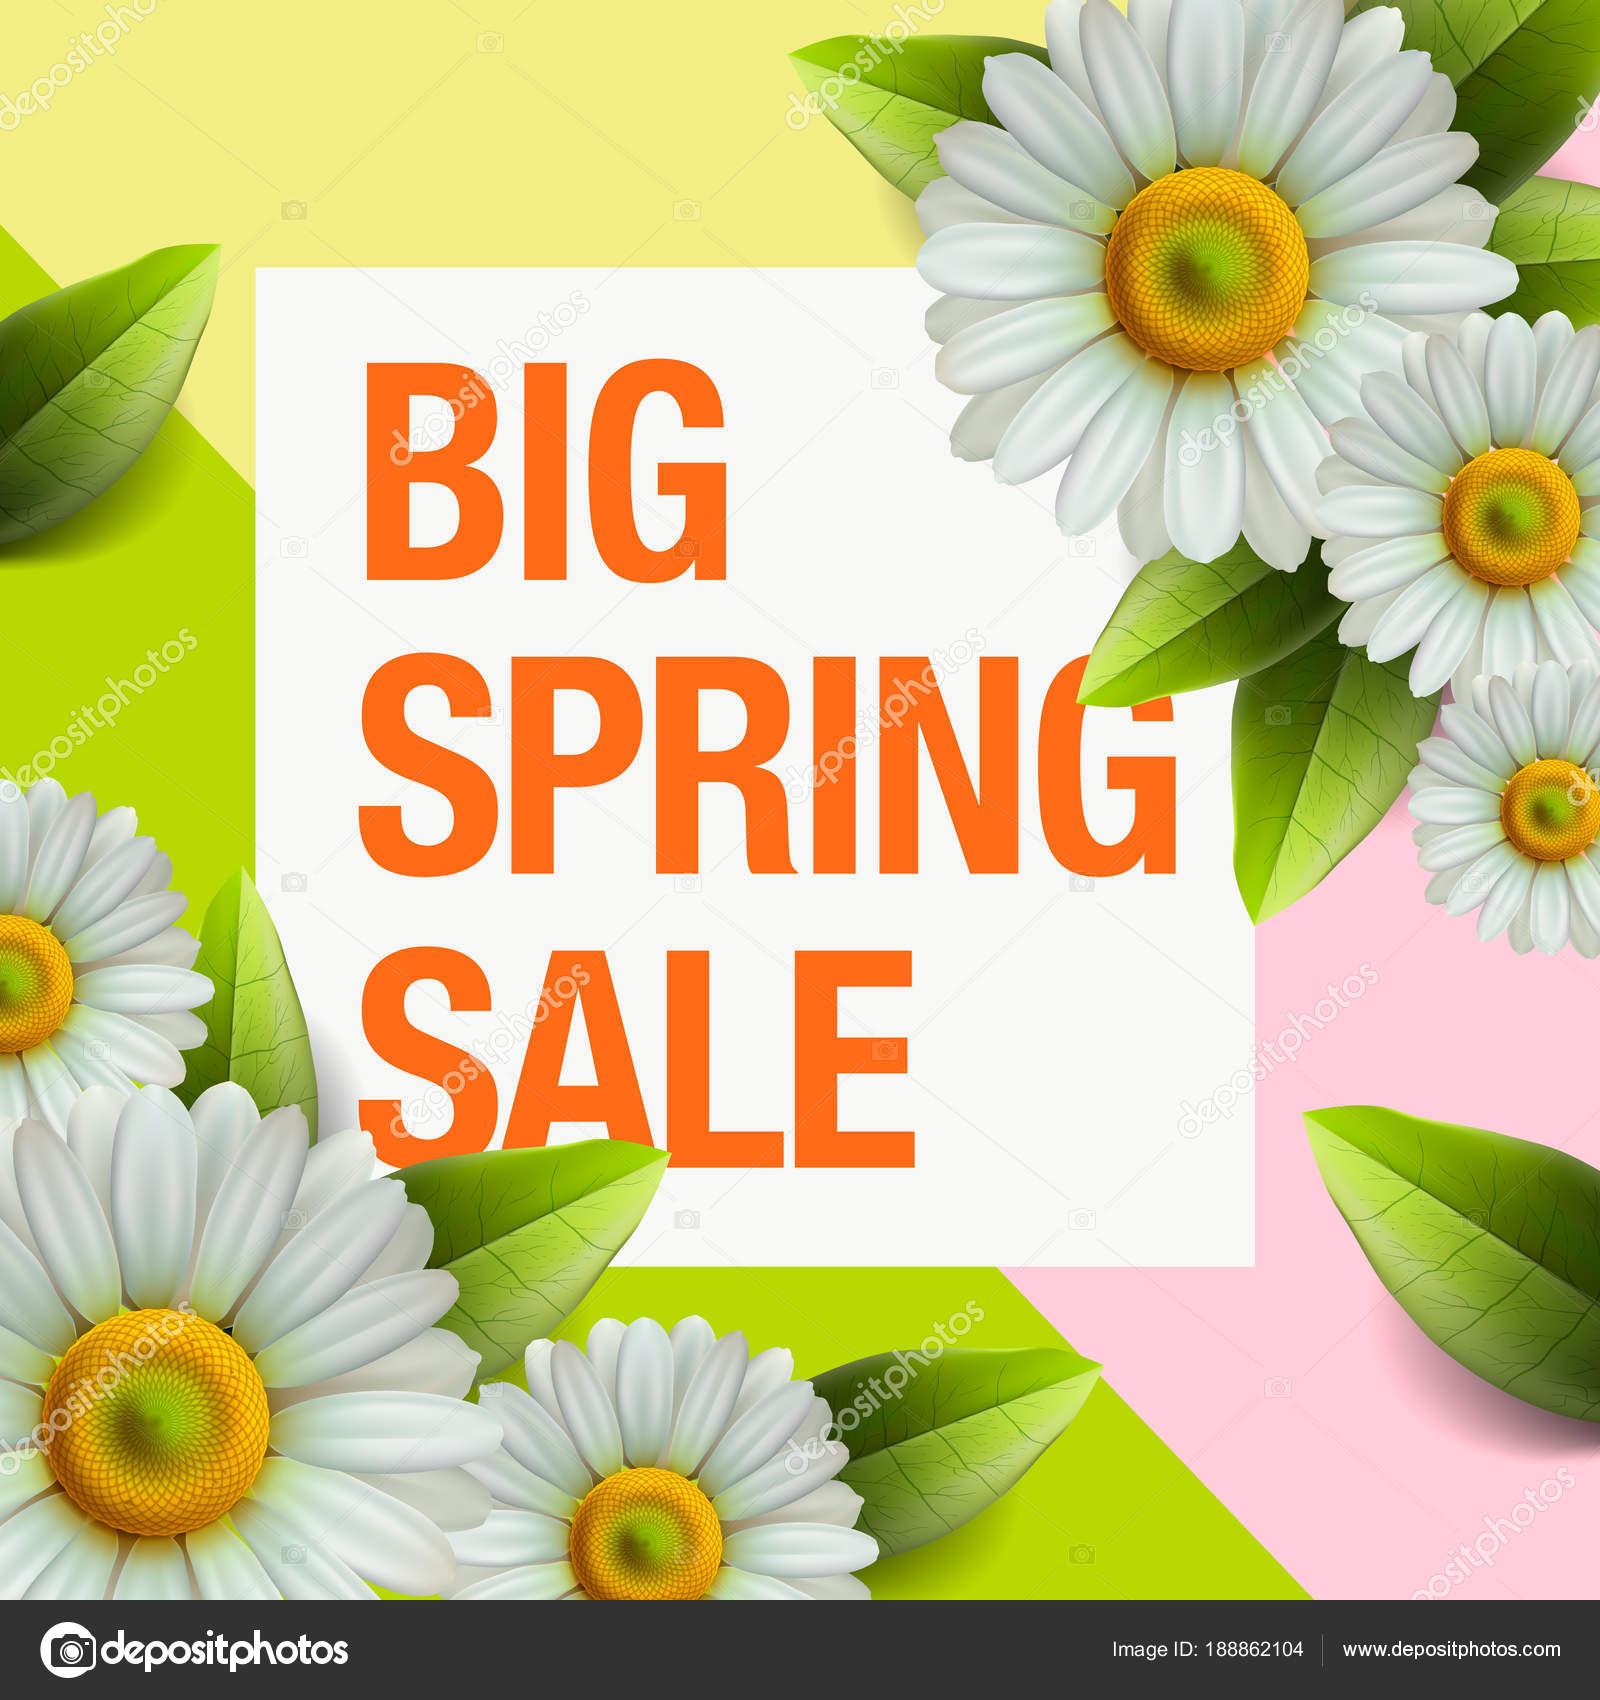 Spring sale design with colorful flowers daisy and leaves spring sale design with colorful flowers daisy and leaves background for spring seasonal promotion izmirmasajfo Images